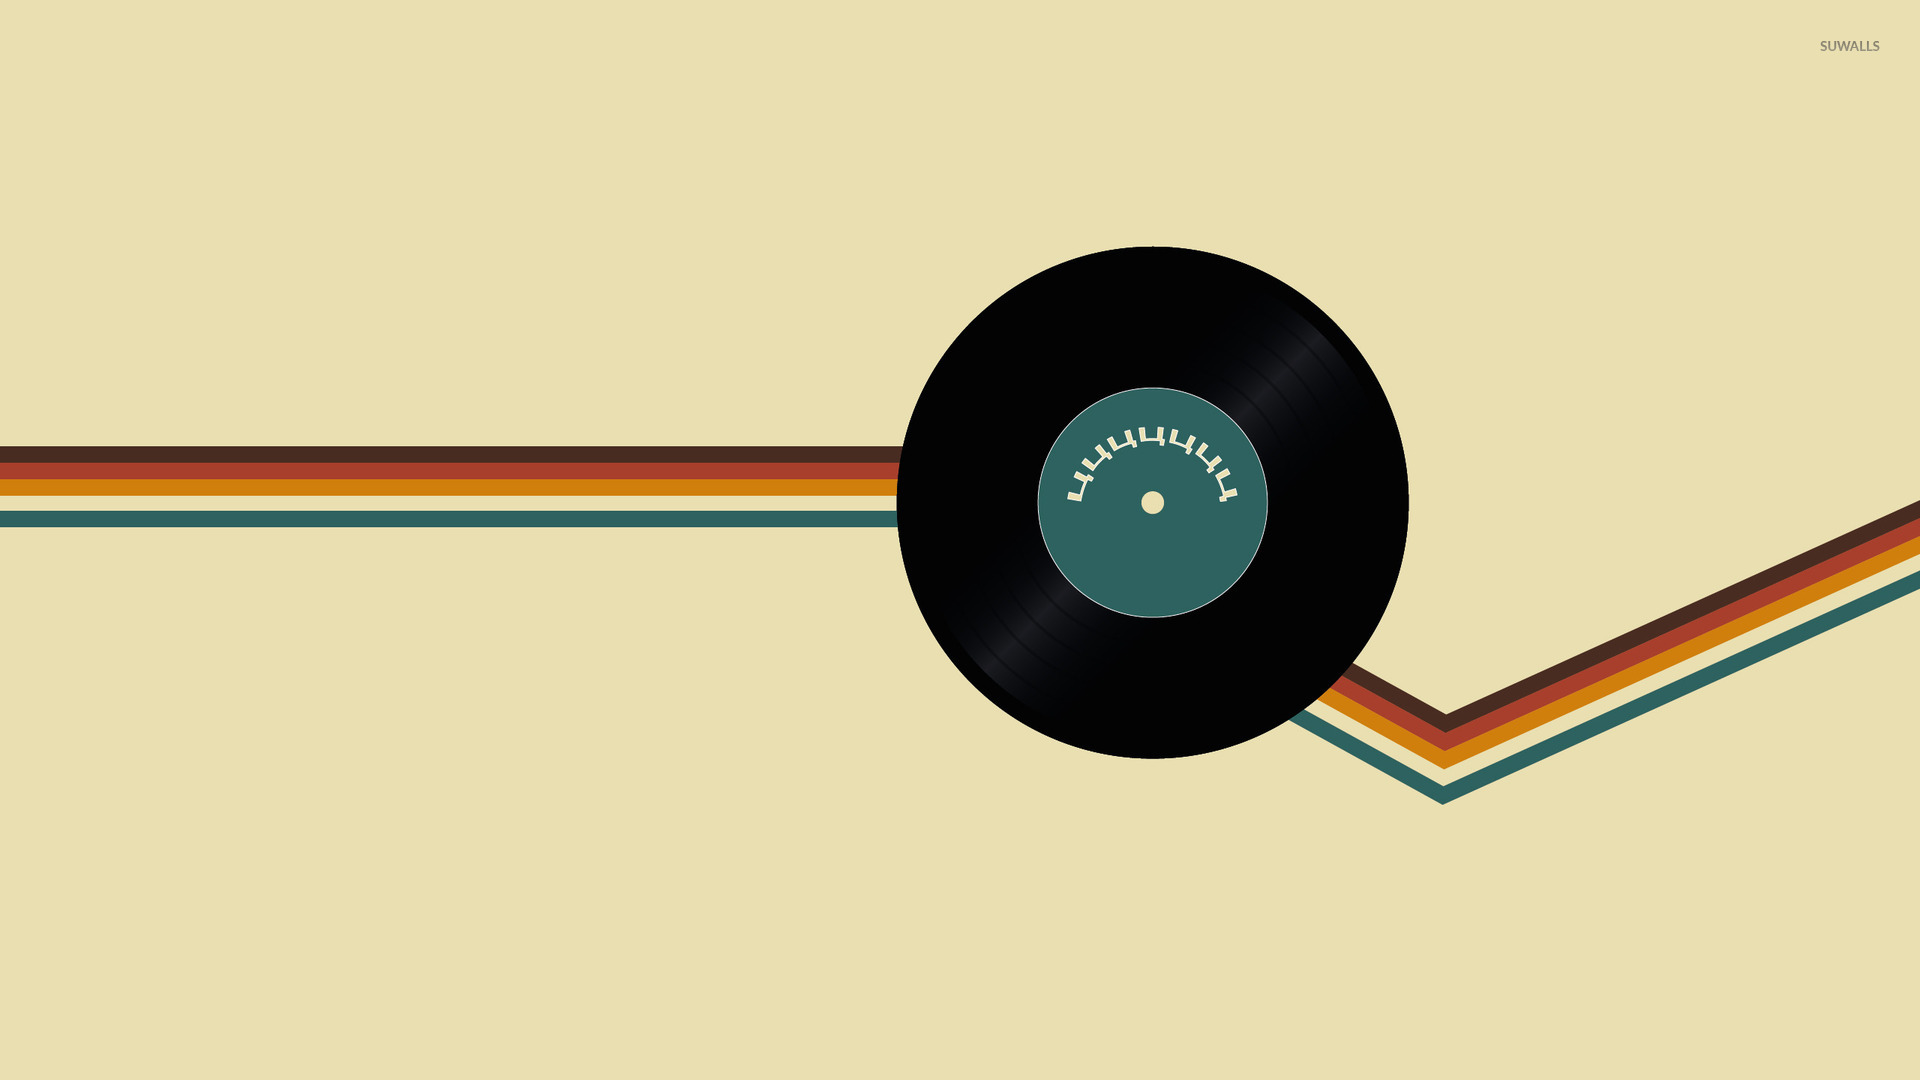 Vinyl record wallpaper   Music wallpapers   14440 1920x1080